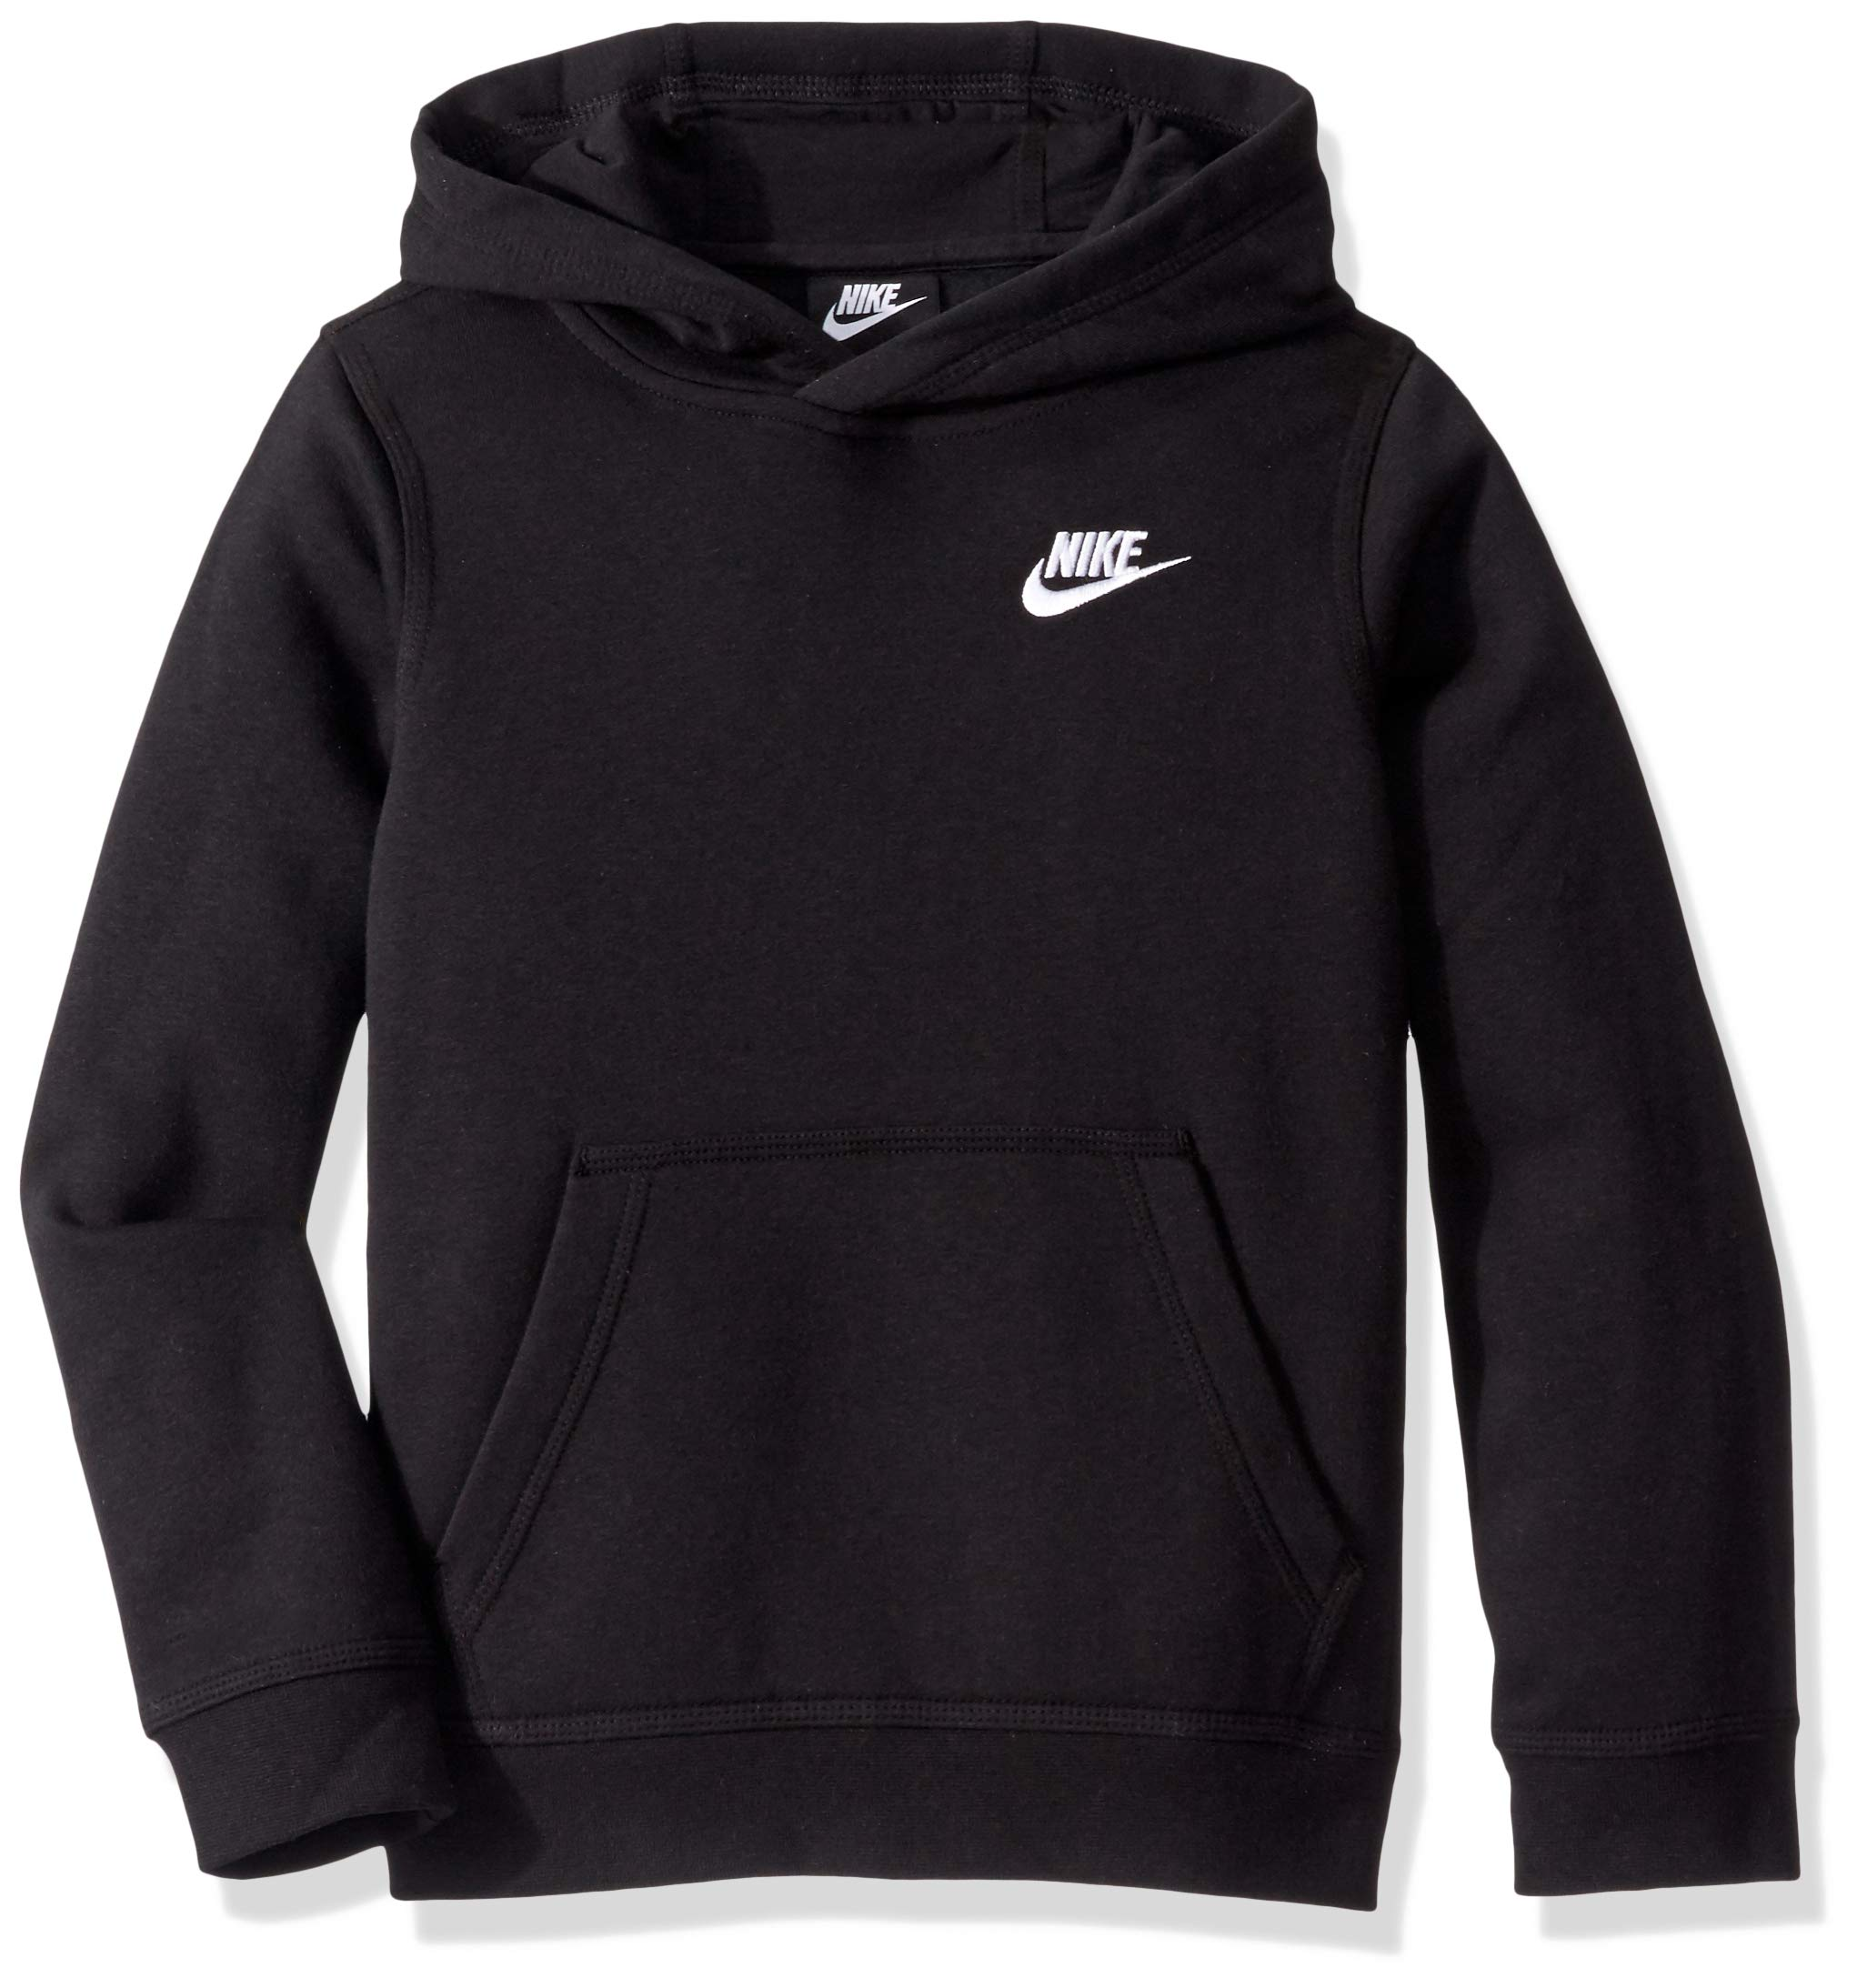 Nike Boy's NSW Pull Over Hoodie Club, Black/White, Large